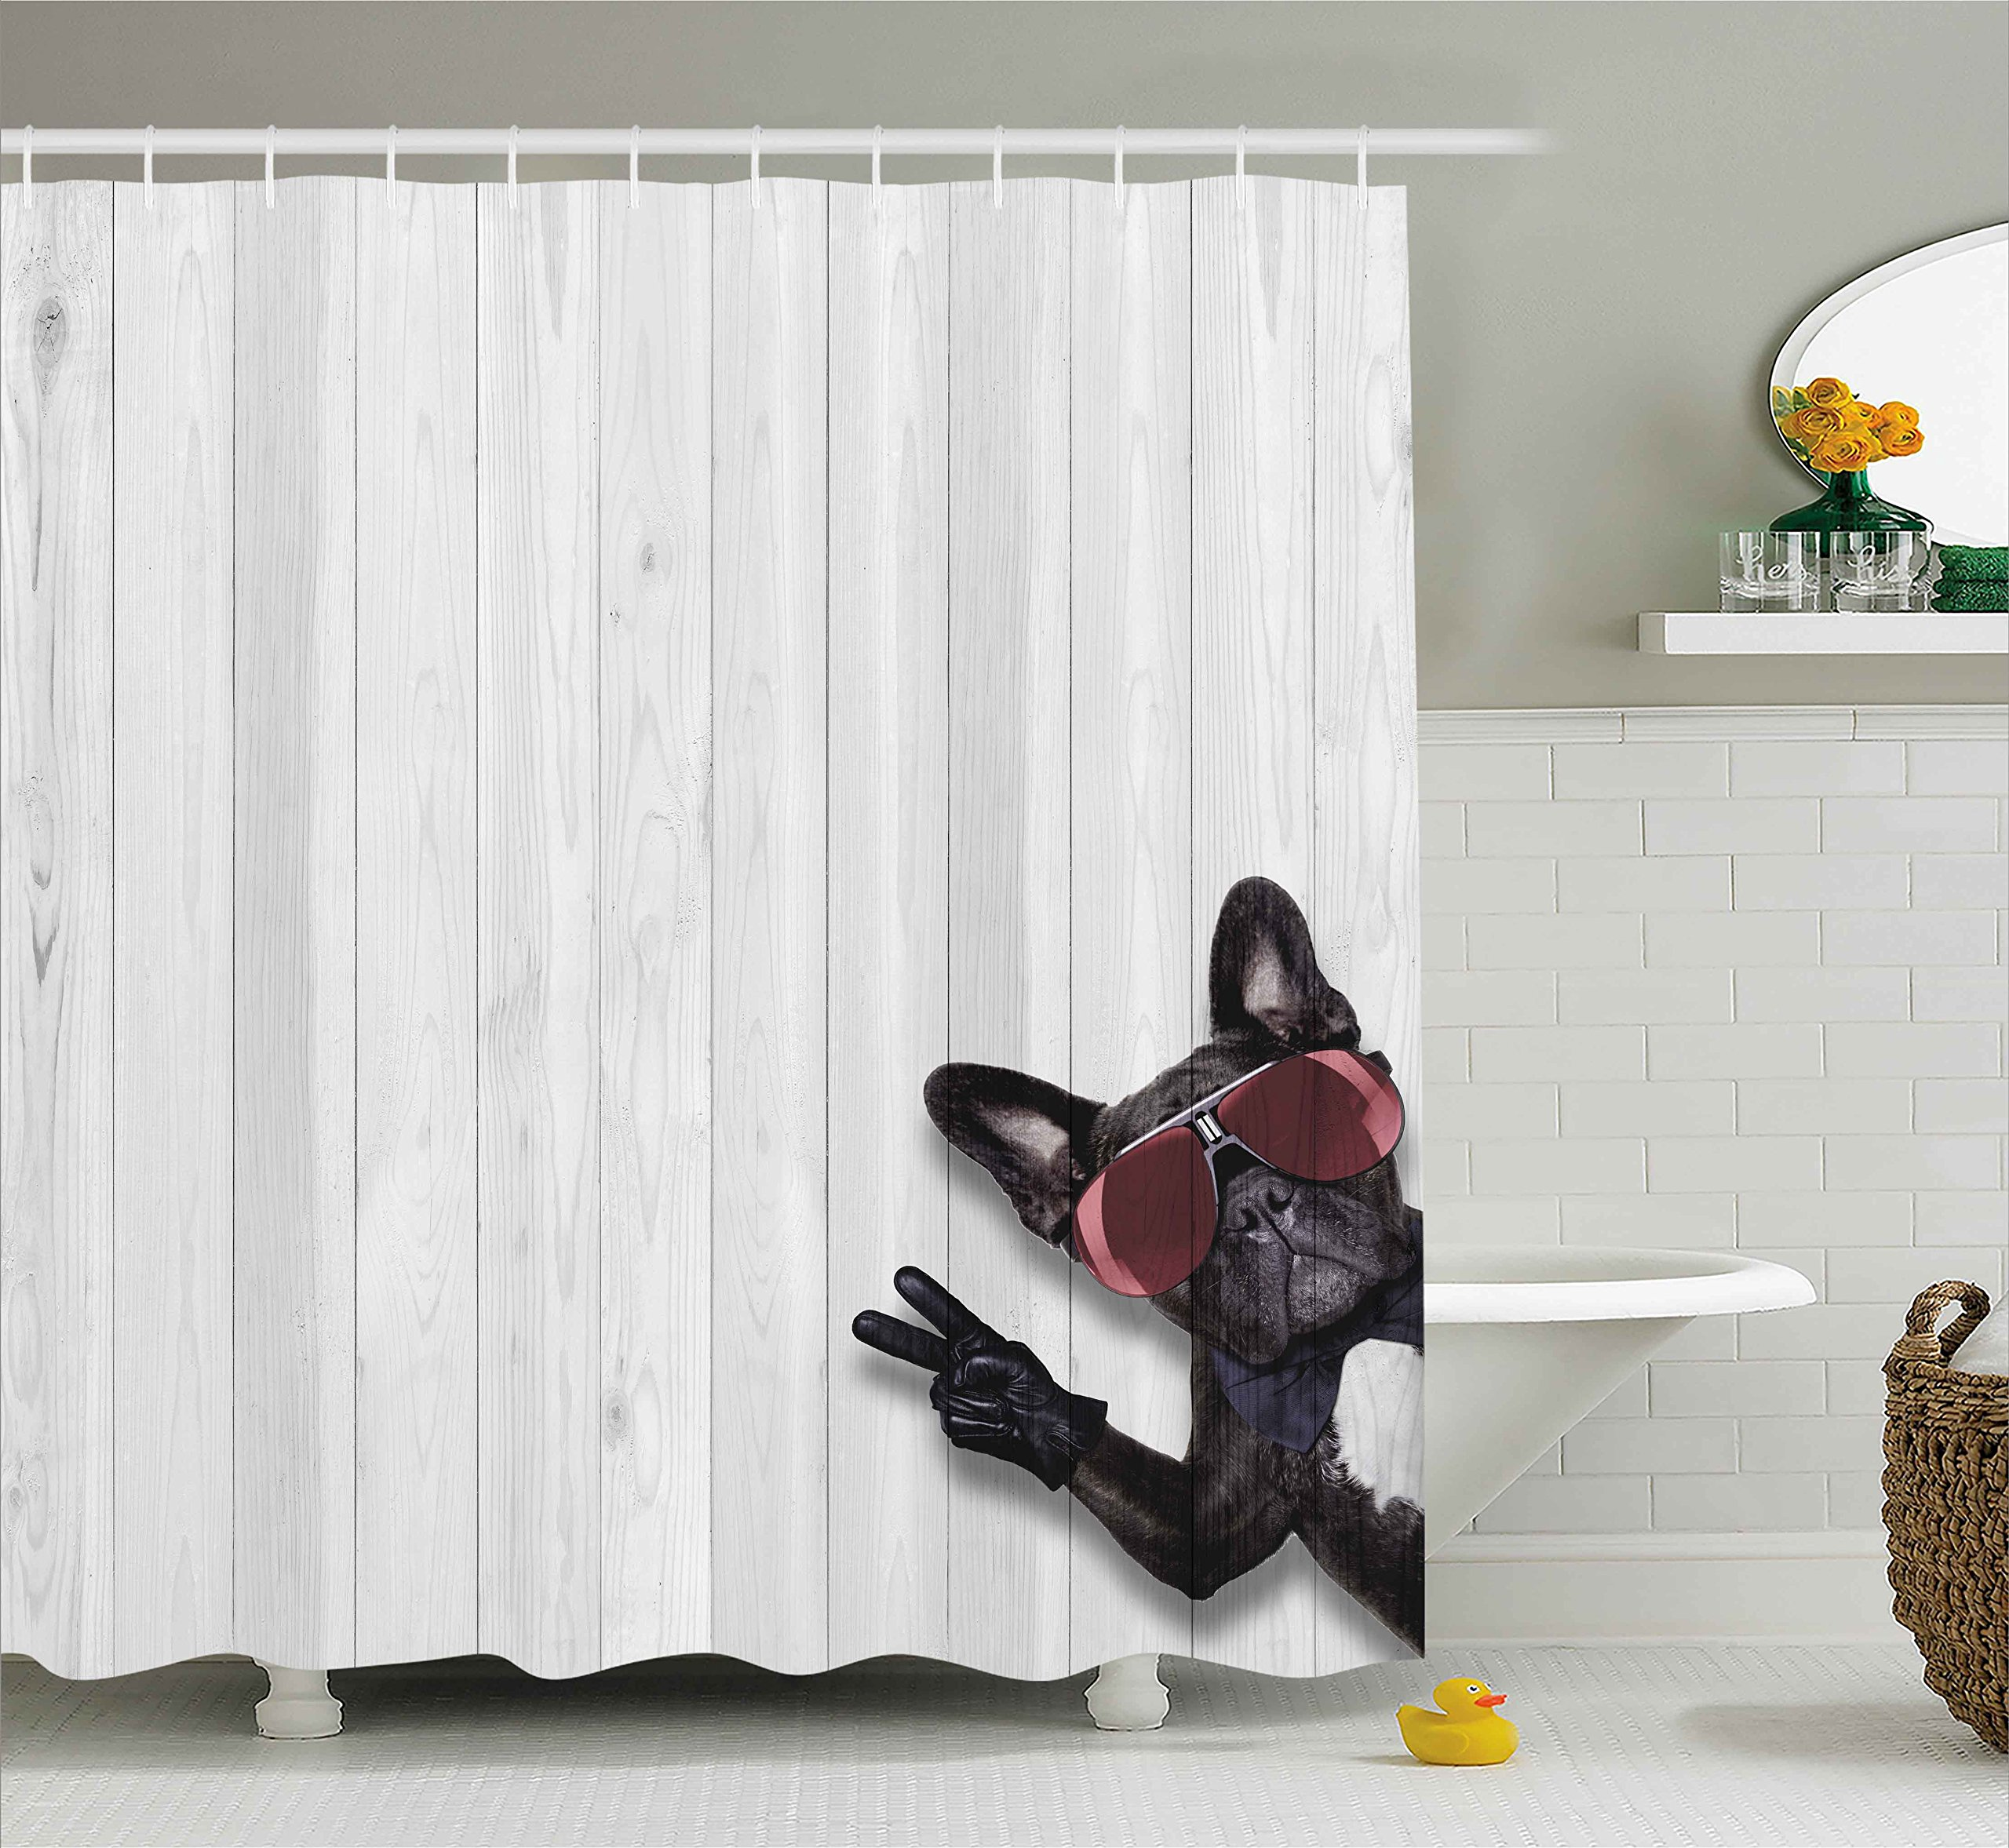 Ambesonne Animal Decor Shower Curtain, Cool Husky Dog with Sunglasses Making Peace Sign with Paws Art Print, Fabric Bathroom Decor Set with Hooks, 70 inches, Light Grey Black